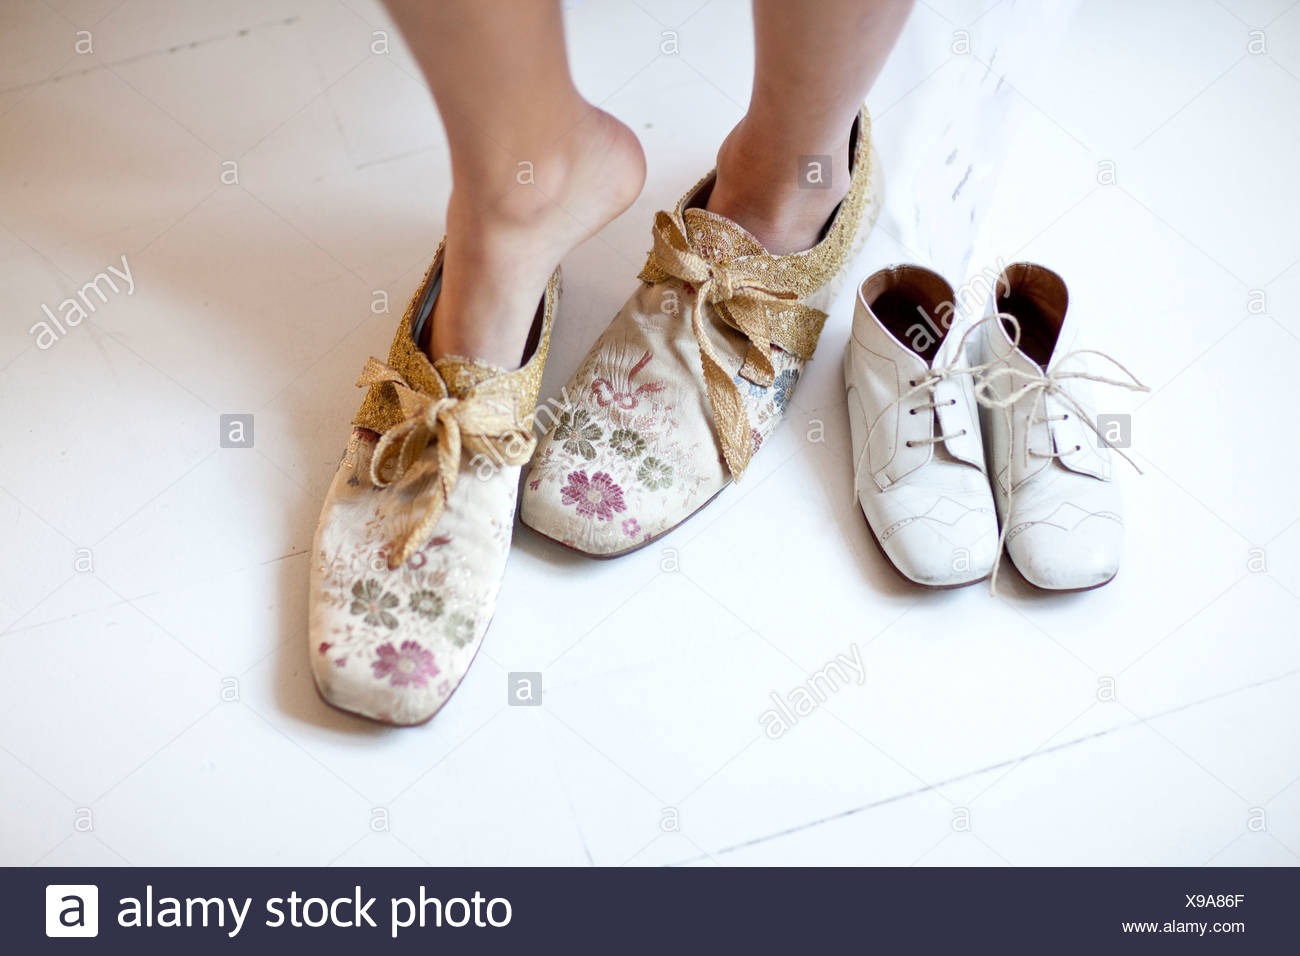 Woman putting on chaussures floral Photo Stock